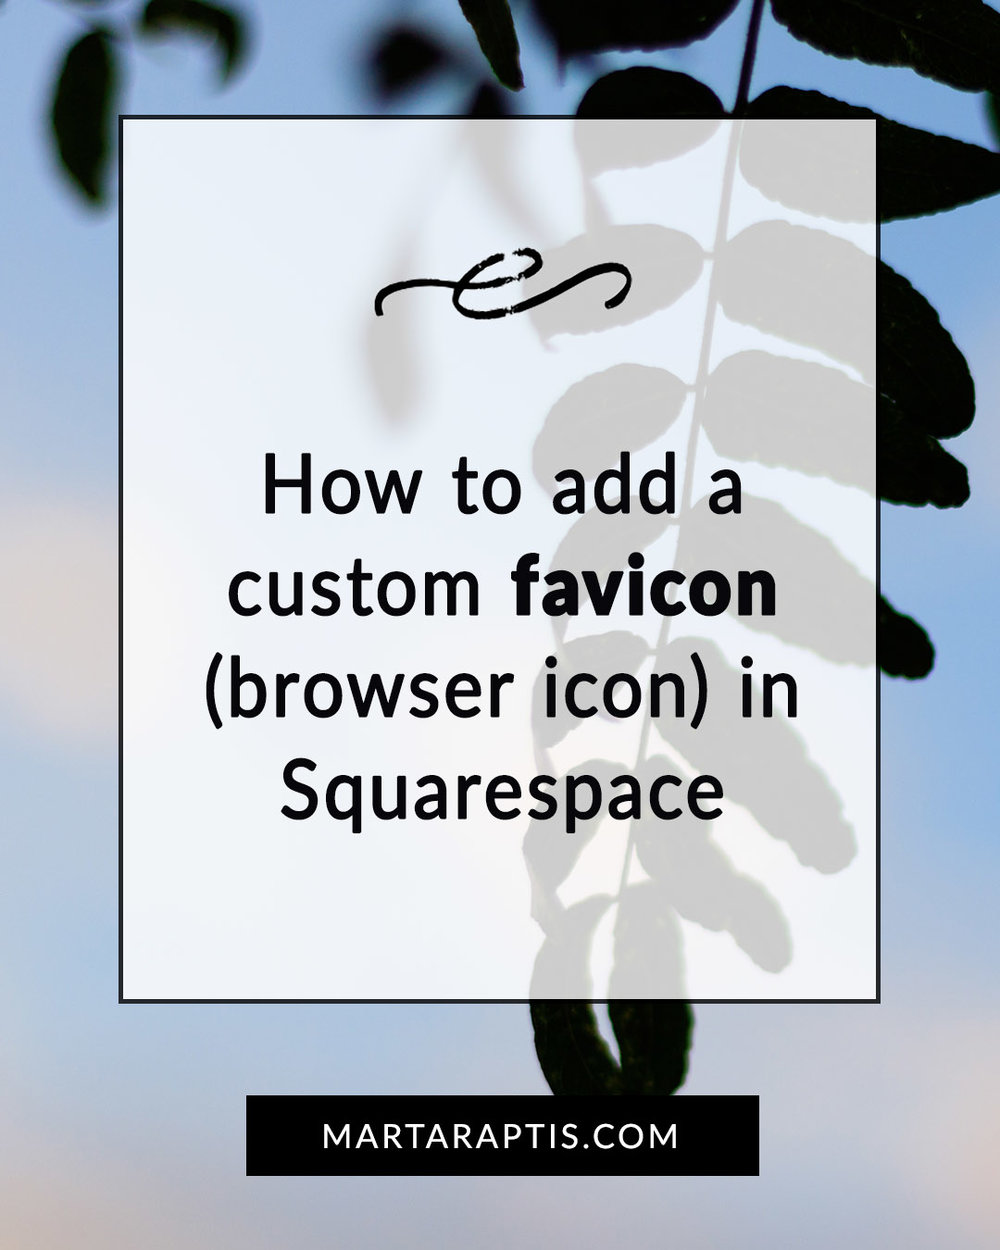 How to add a custom favicon (browser icon) in Squarespace.jpg